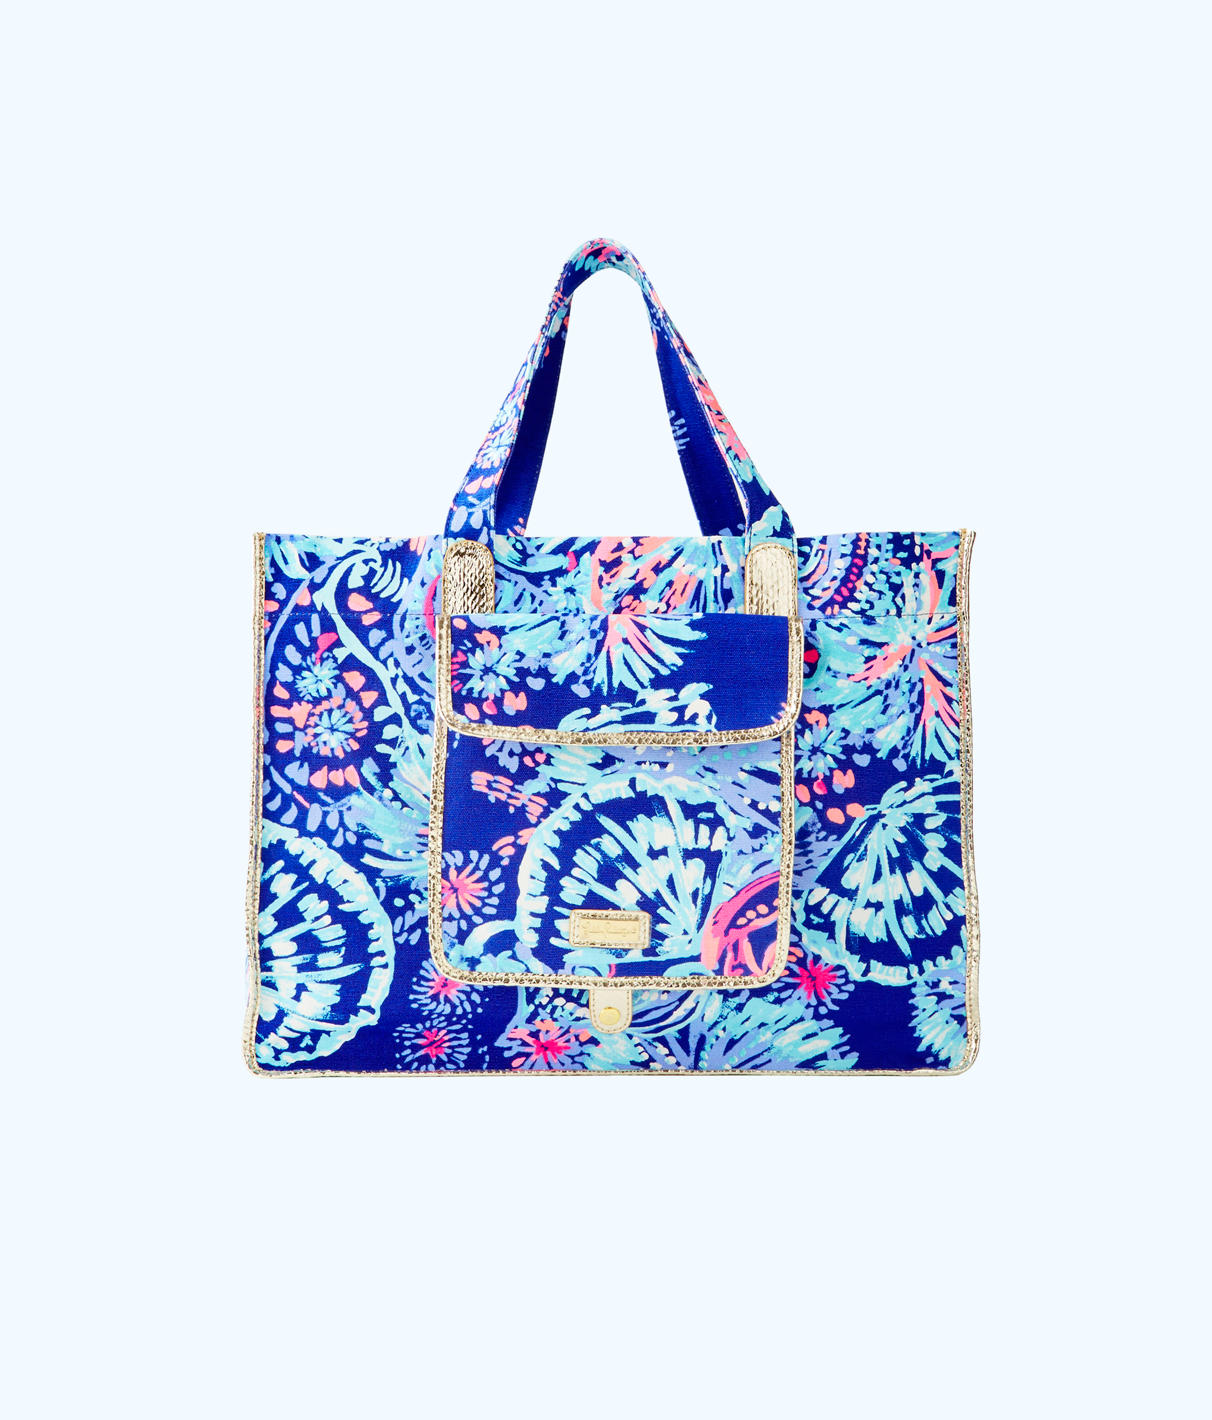 Lilly Pulitzer Lilly Pulitzer Sunbathers Foldable Beach Tote Bag